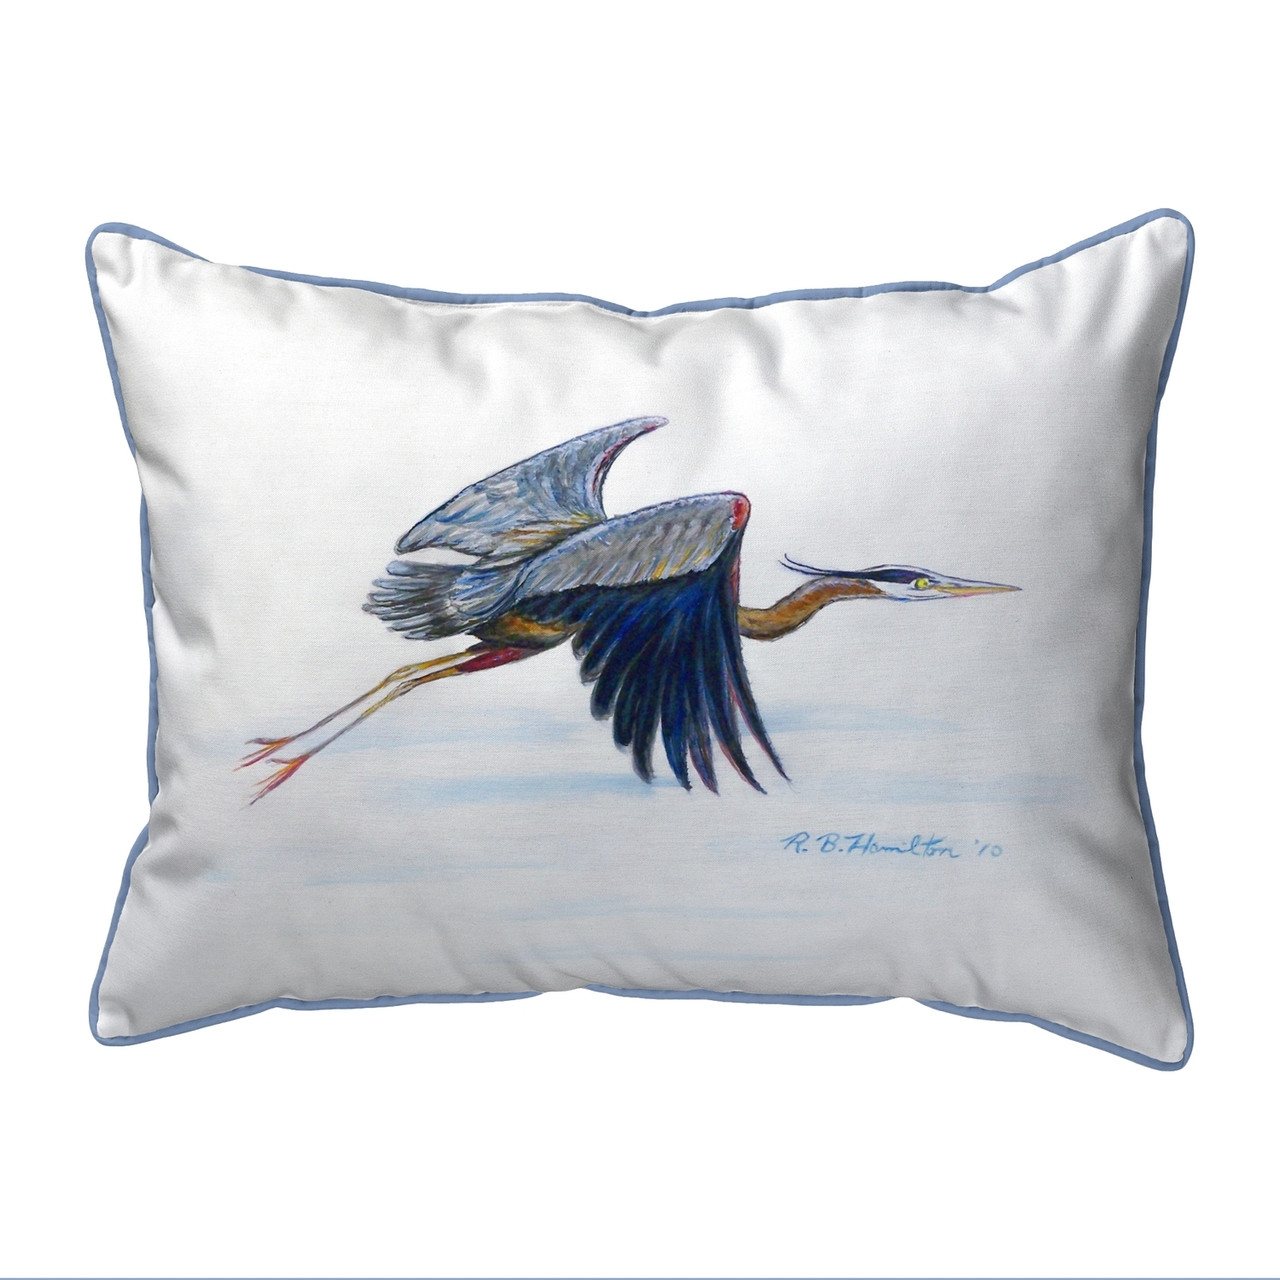 Eddie S Blue Heron Pillows